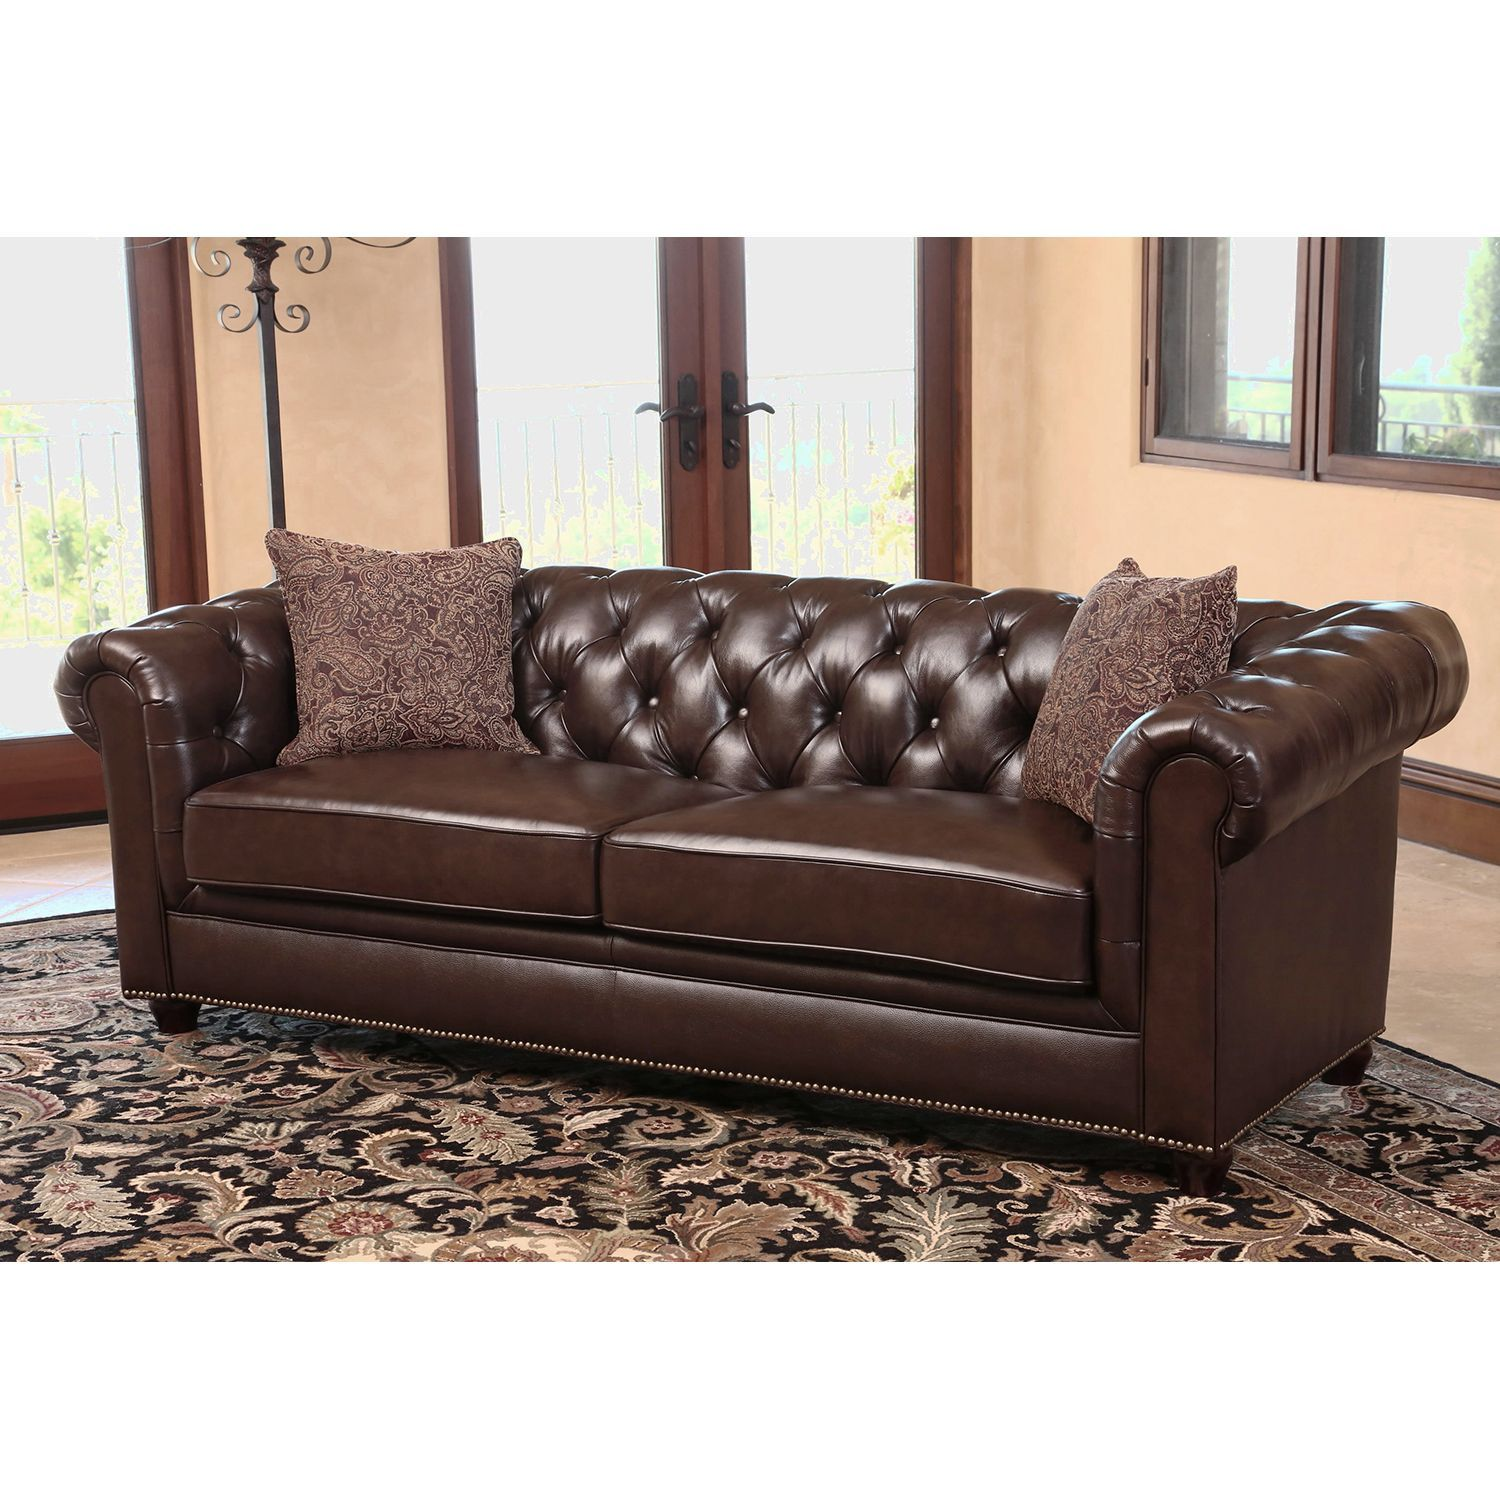 Chesterfield Top Grain Leather Sofa